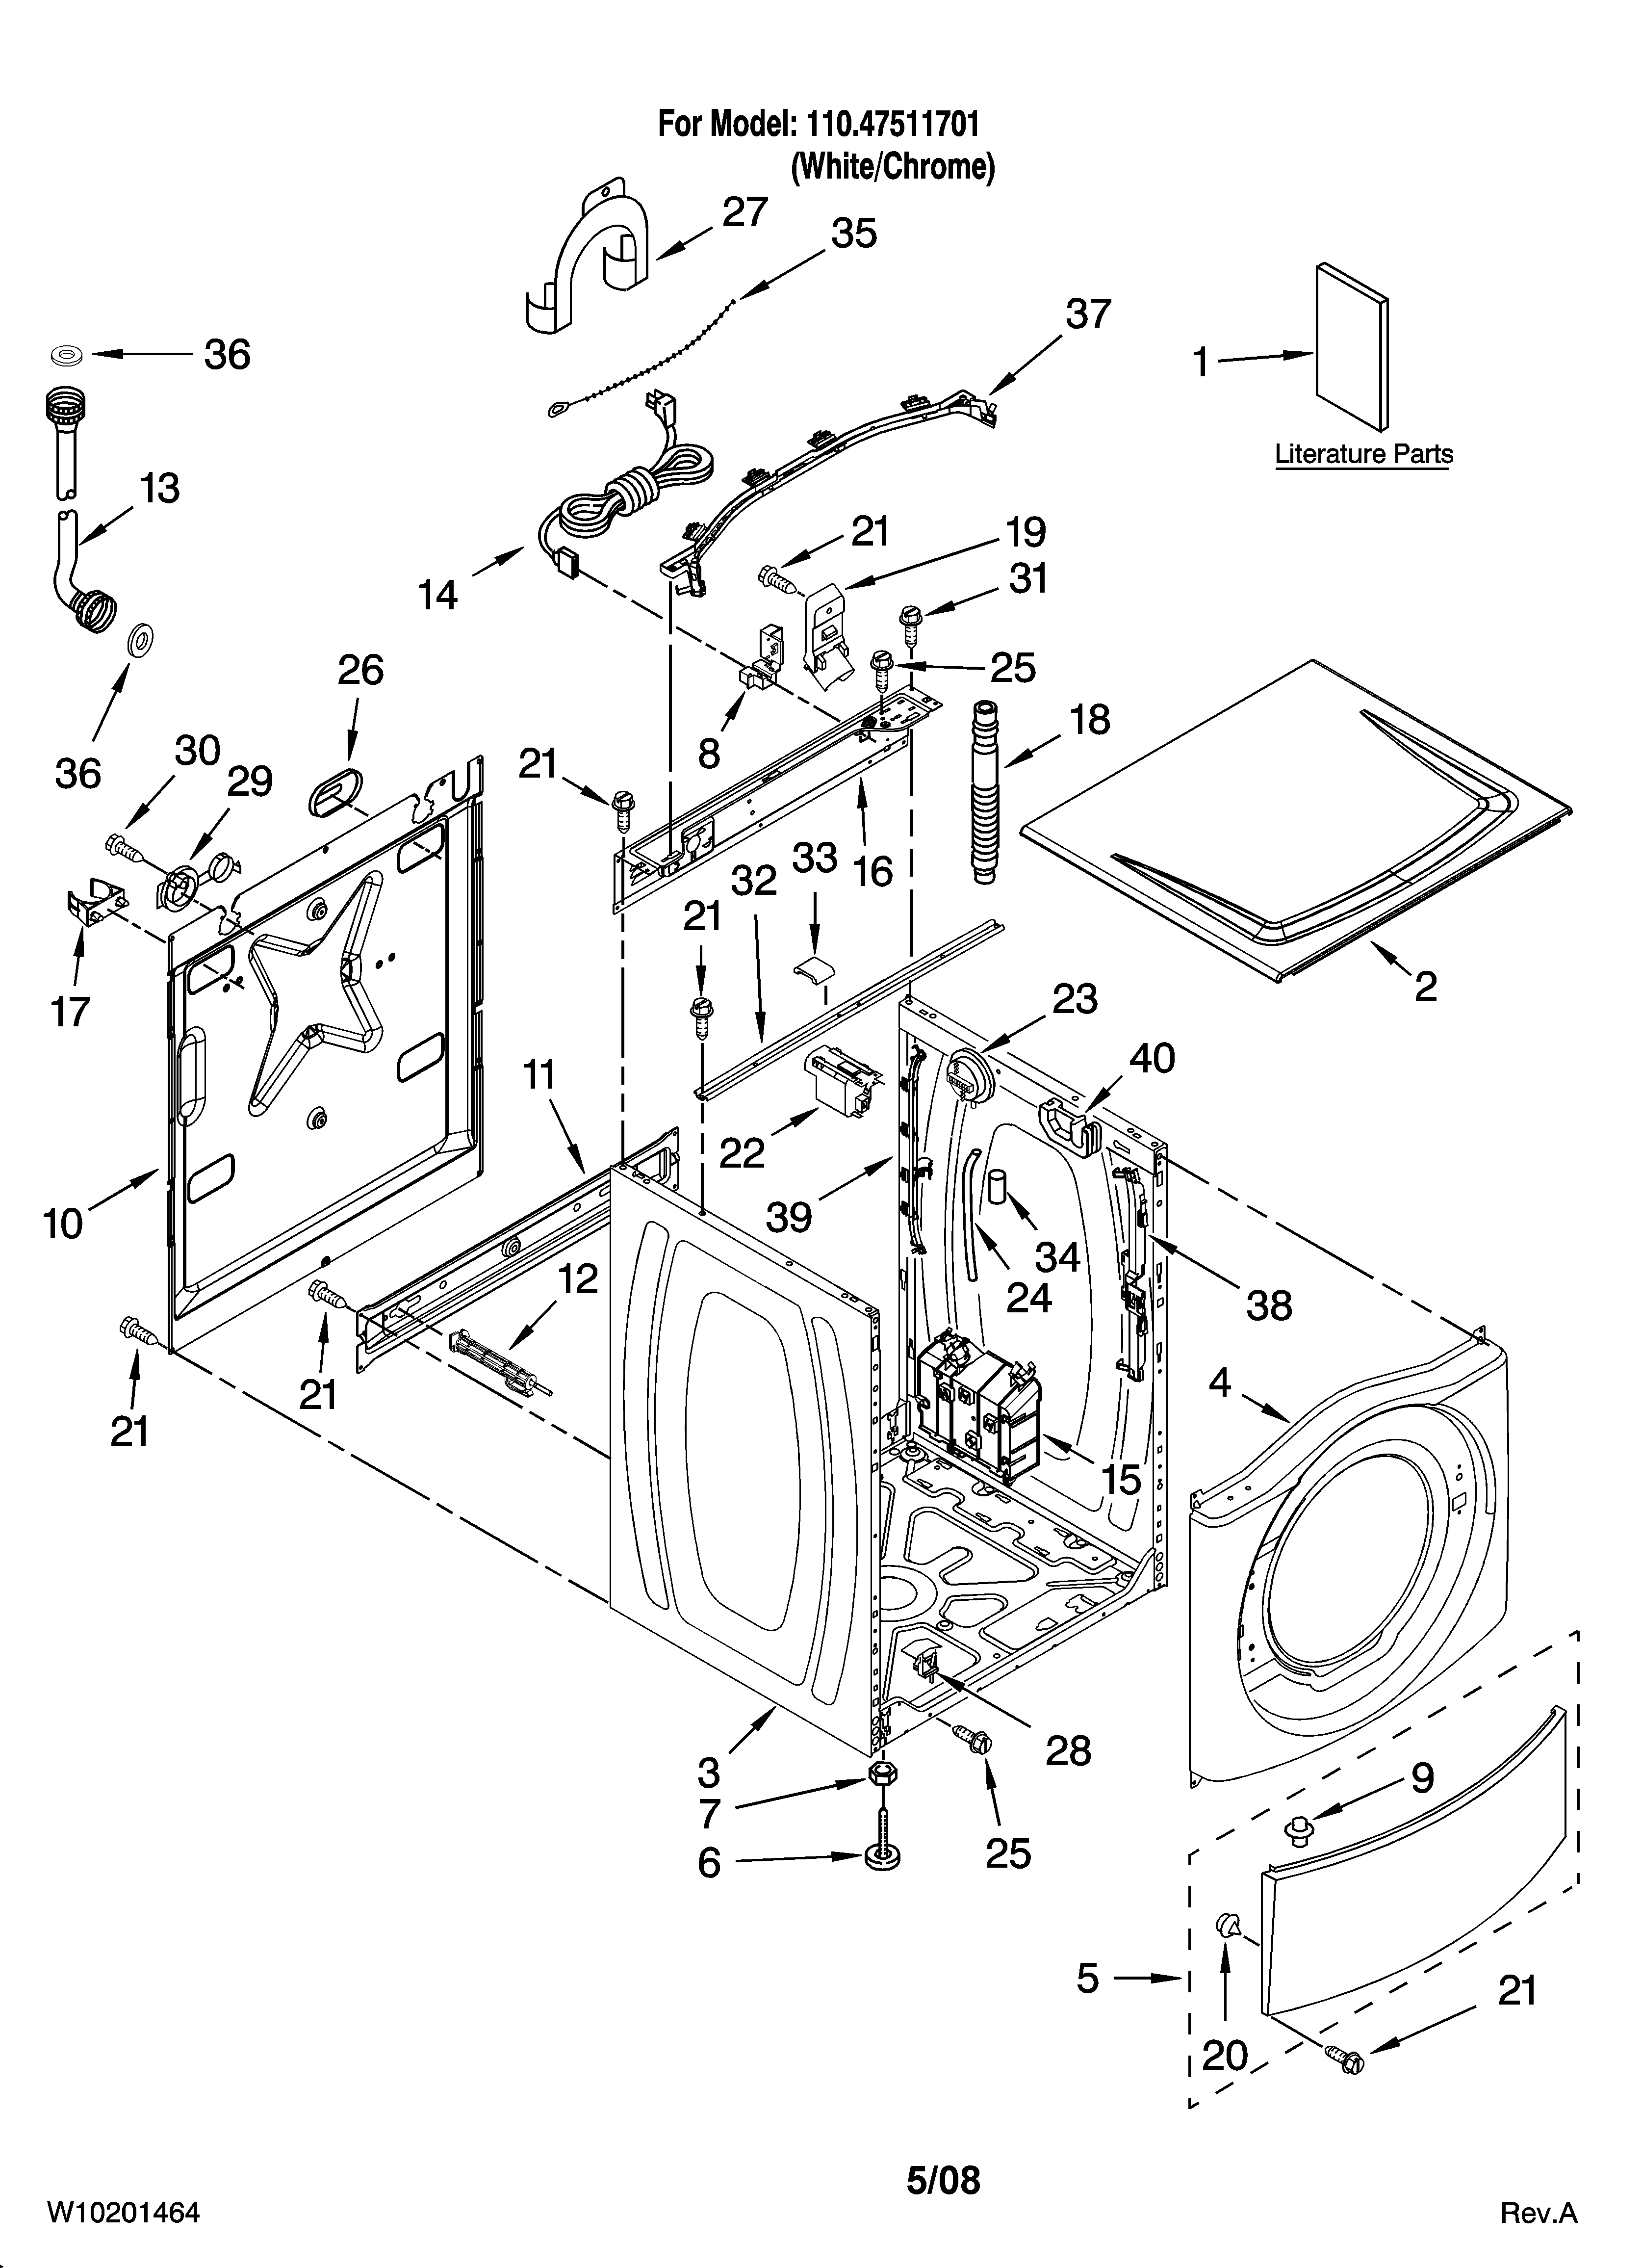 Kenmore 11047511701 top and cabinet parts diagram